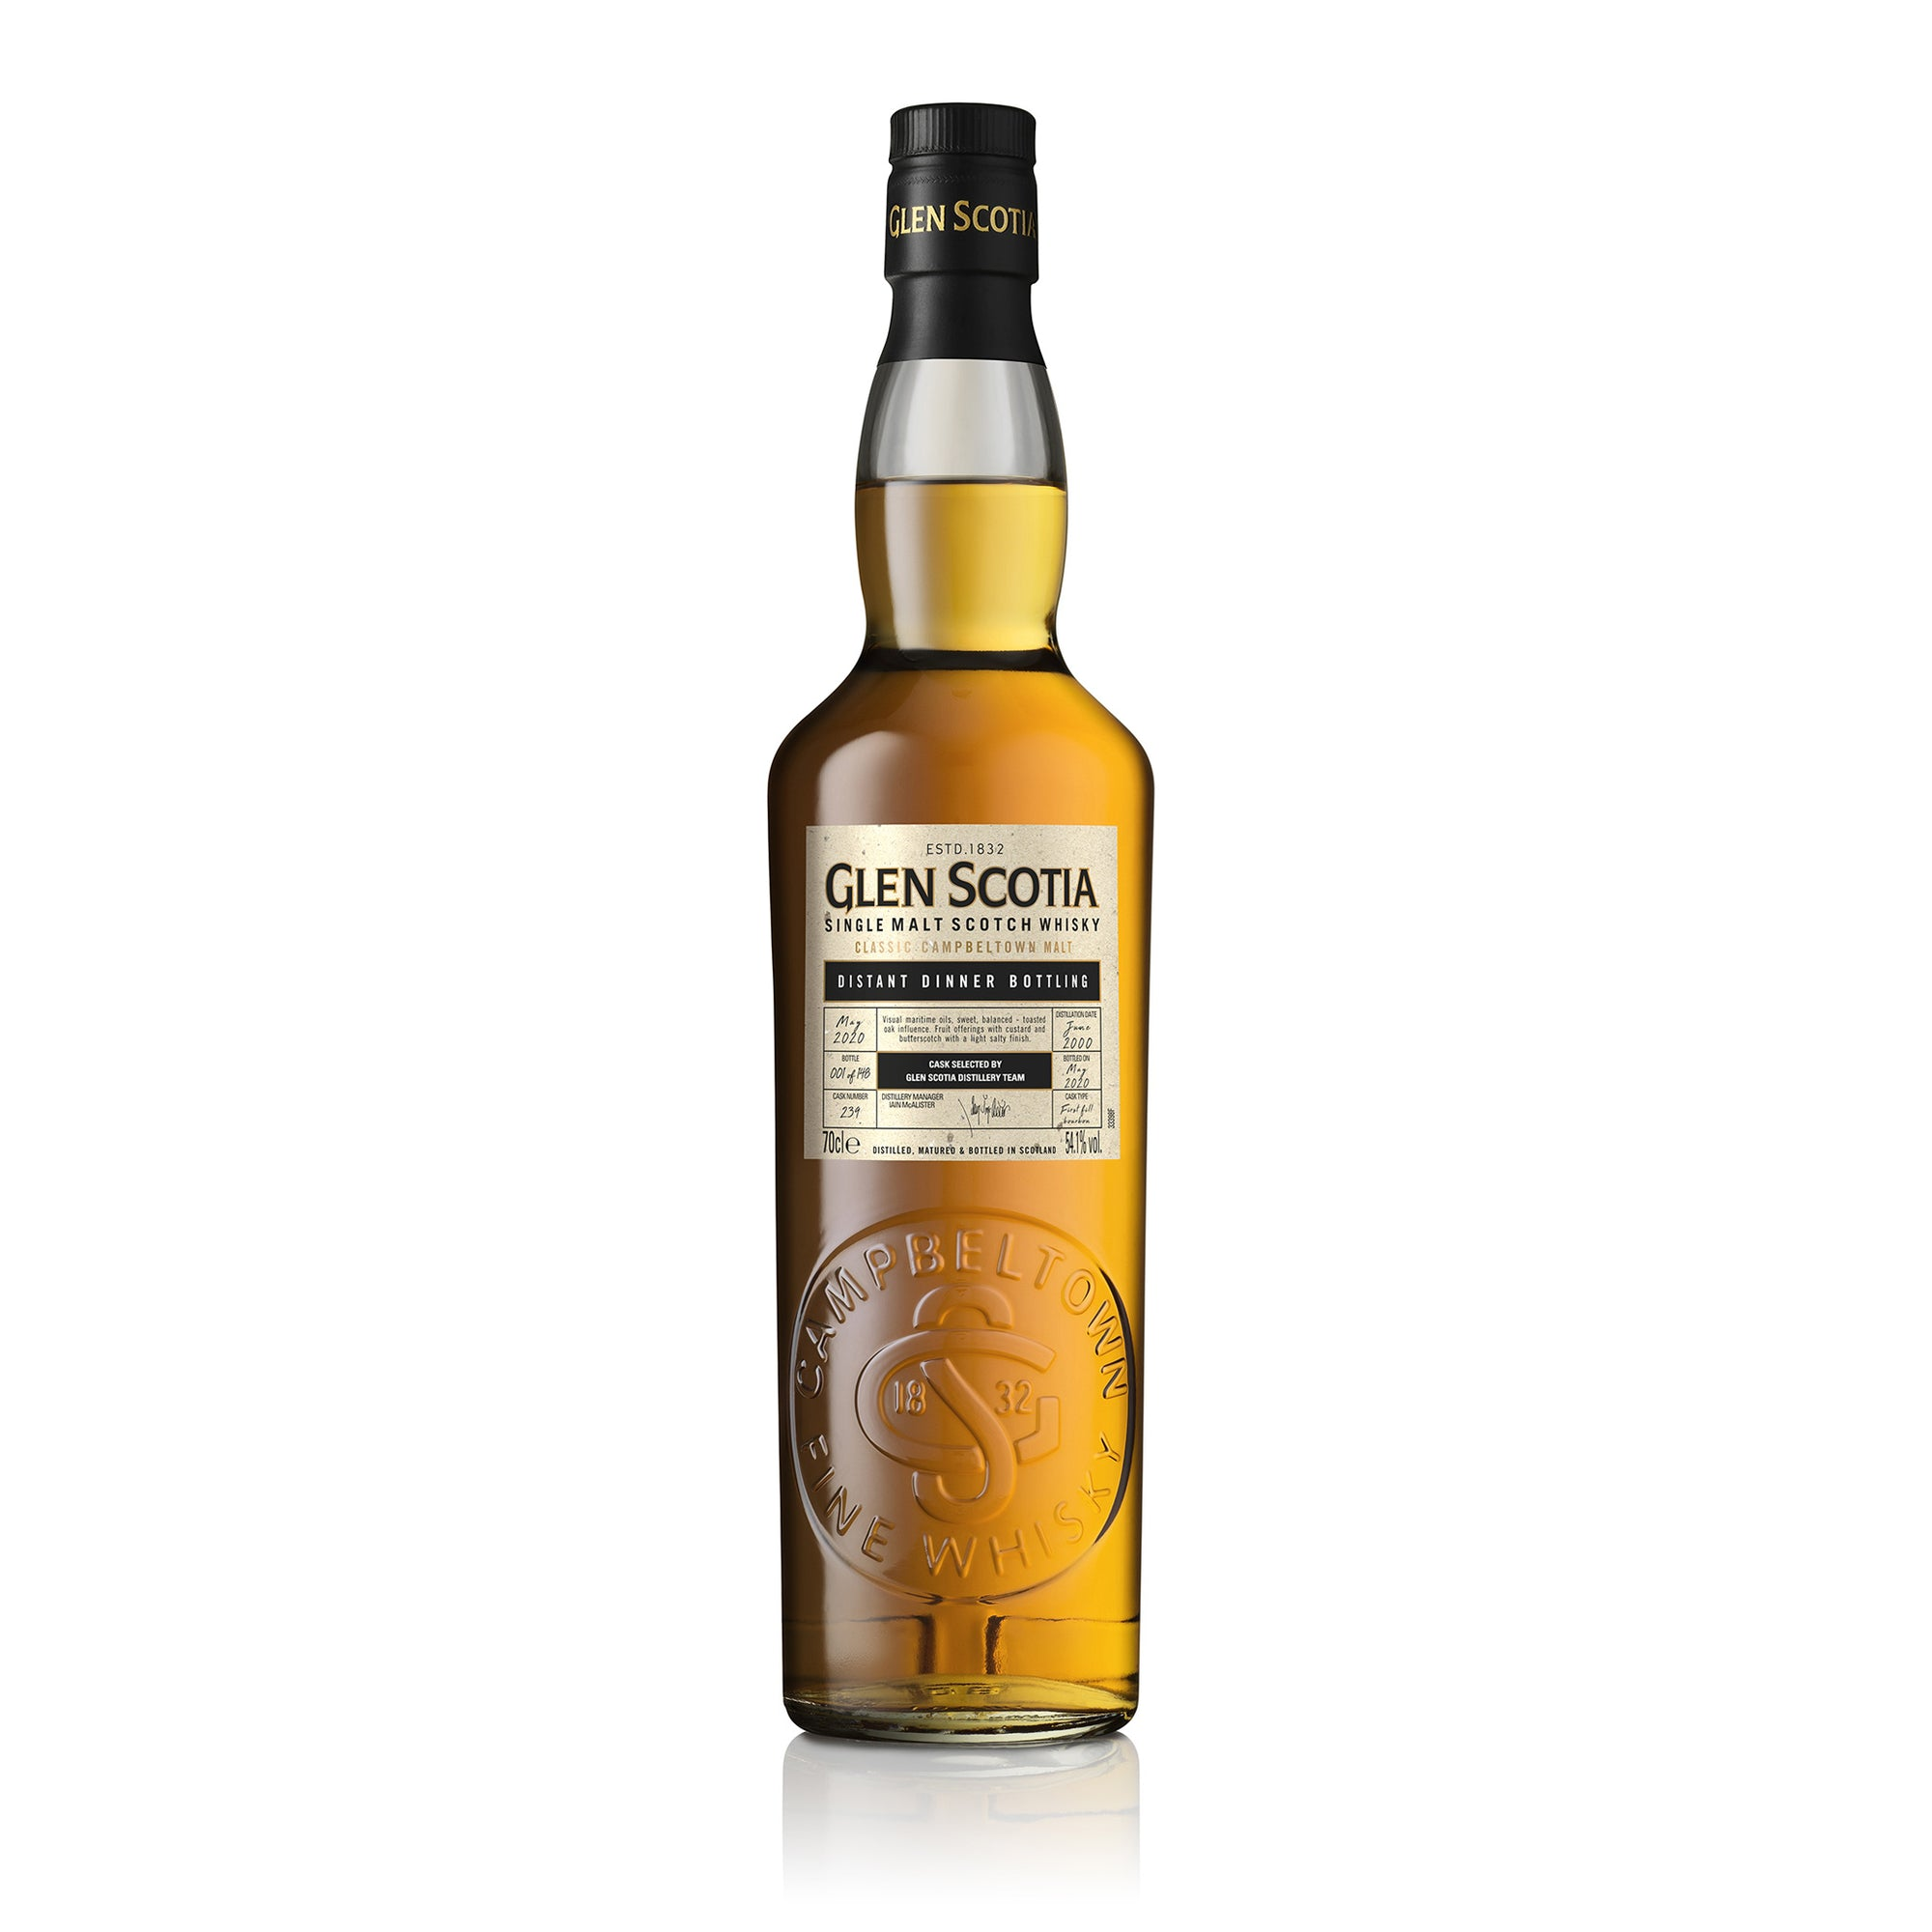 glen-scotia-distant-dinner-single-cask-whisky-2020-bottle.